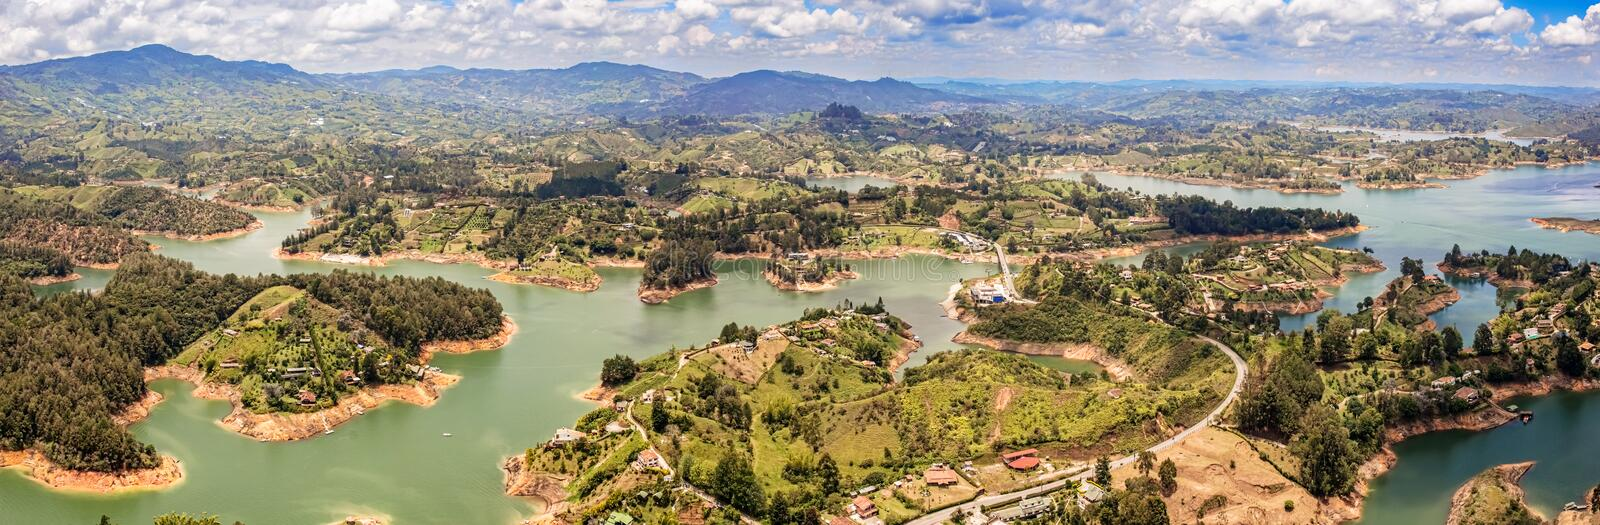 Aerial view of Guatape, Penol, dam lake in Colombia. Aerial view of Guatape, Penol, dam lake in Colombia as seen from the viewpoint at the top of The rock El stock photos